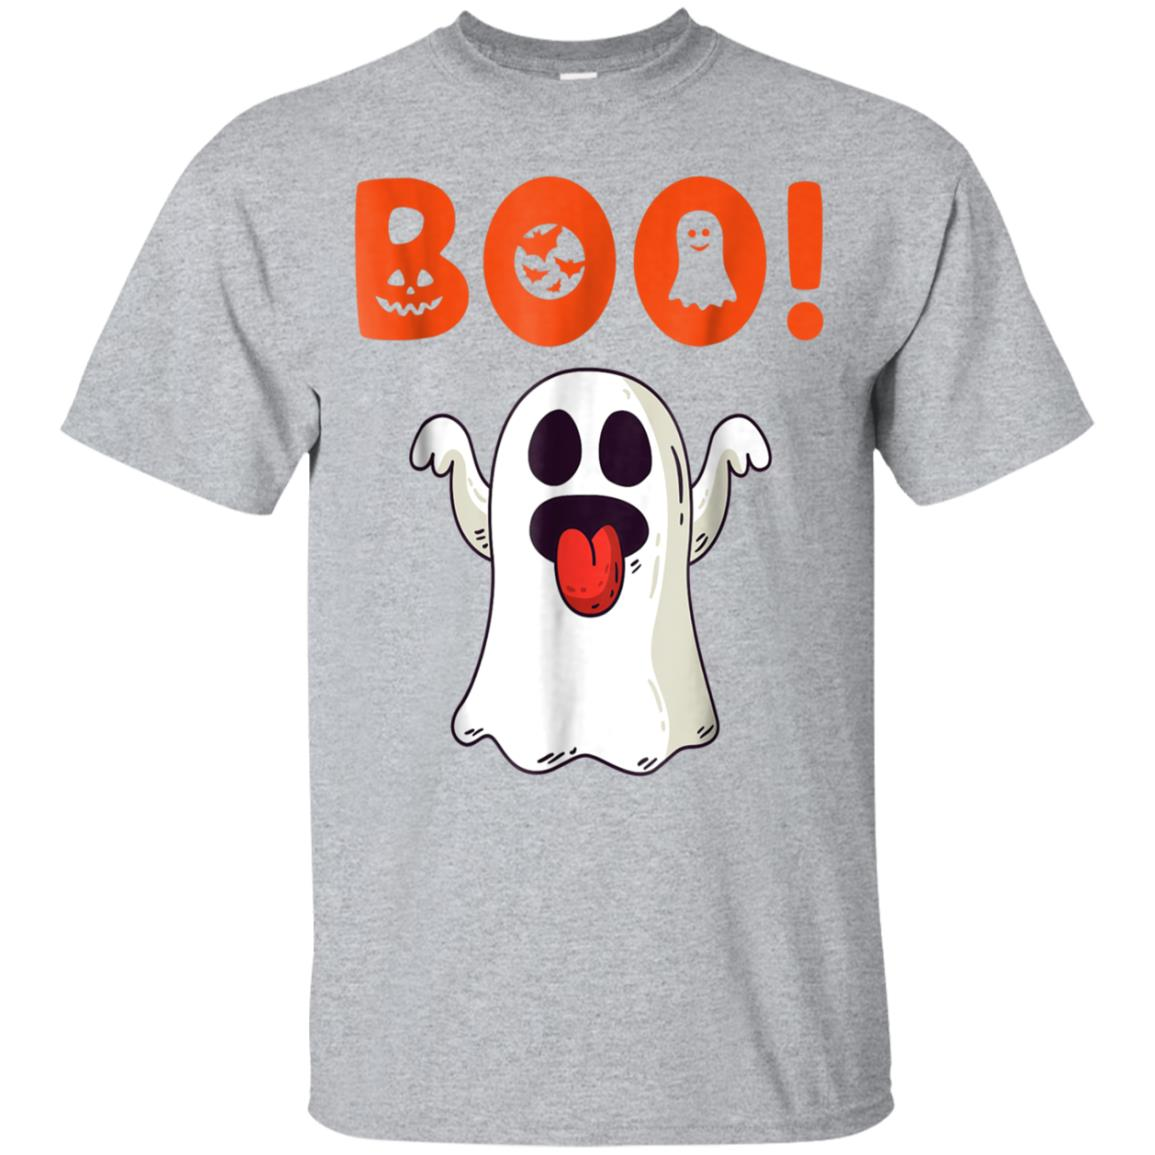 Funny Boo Ghost Tshirt For Halloween Day 99promocode